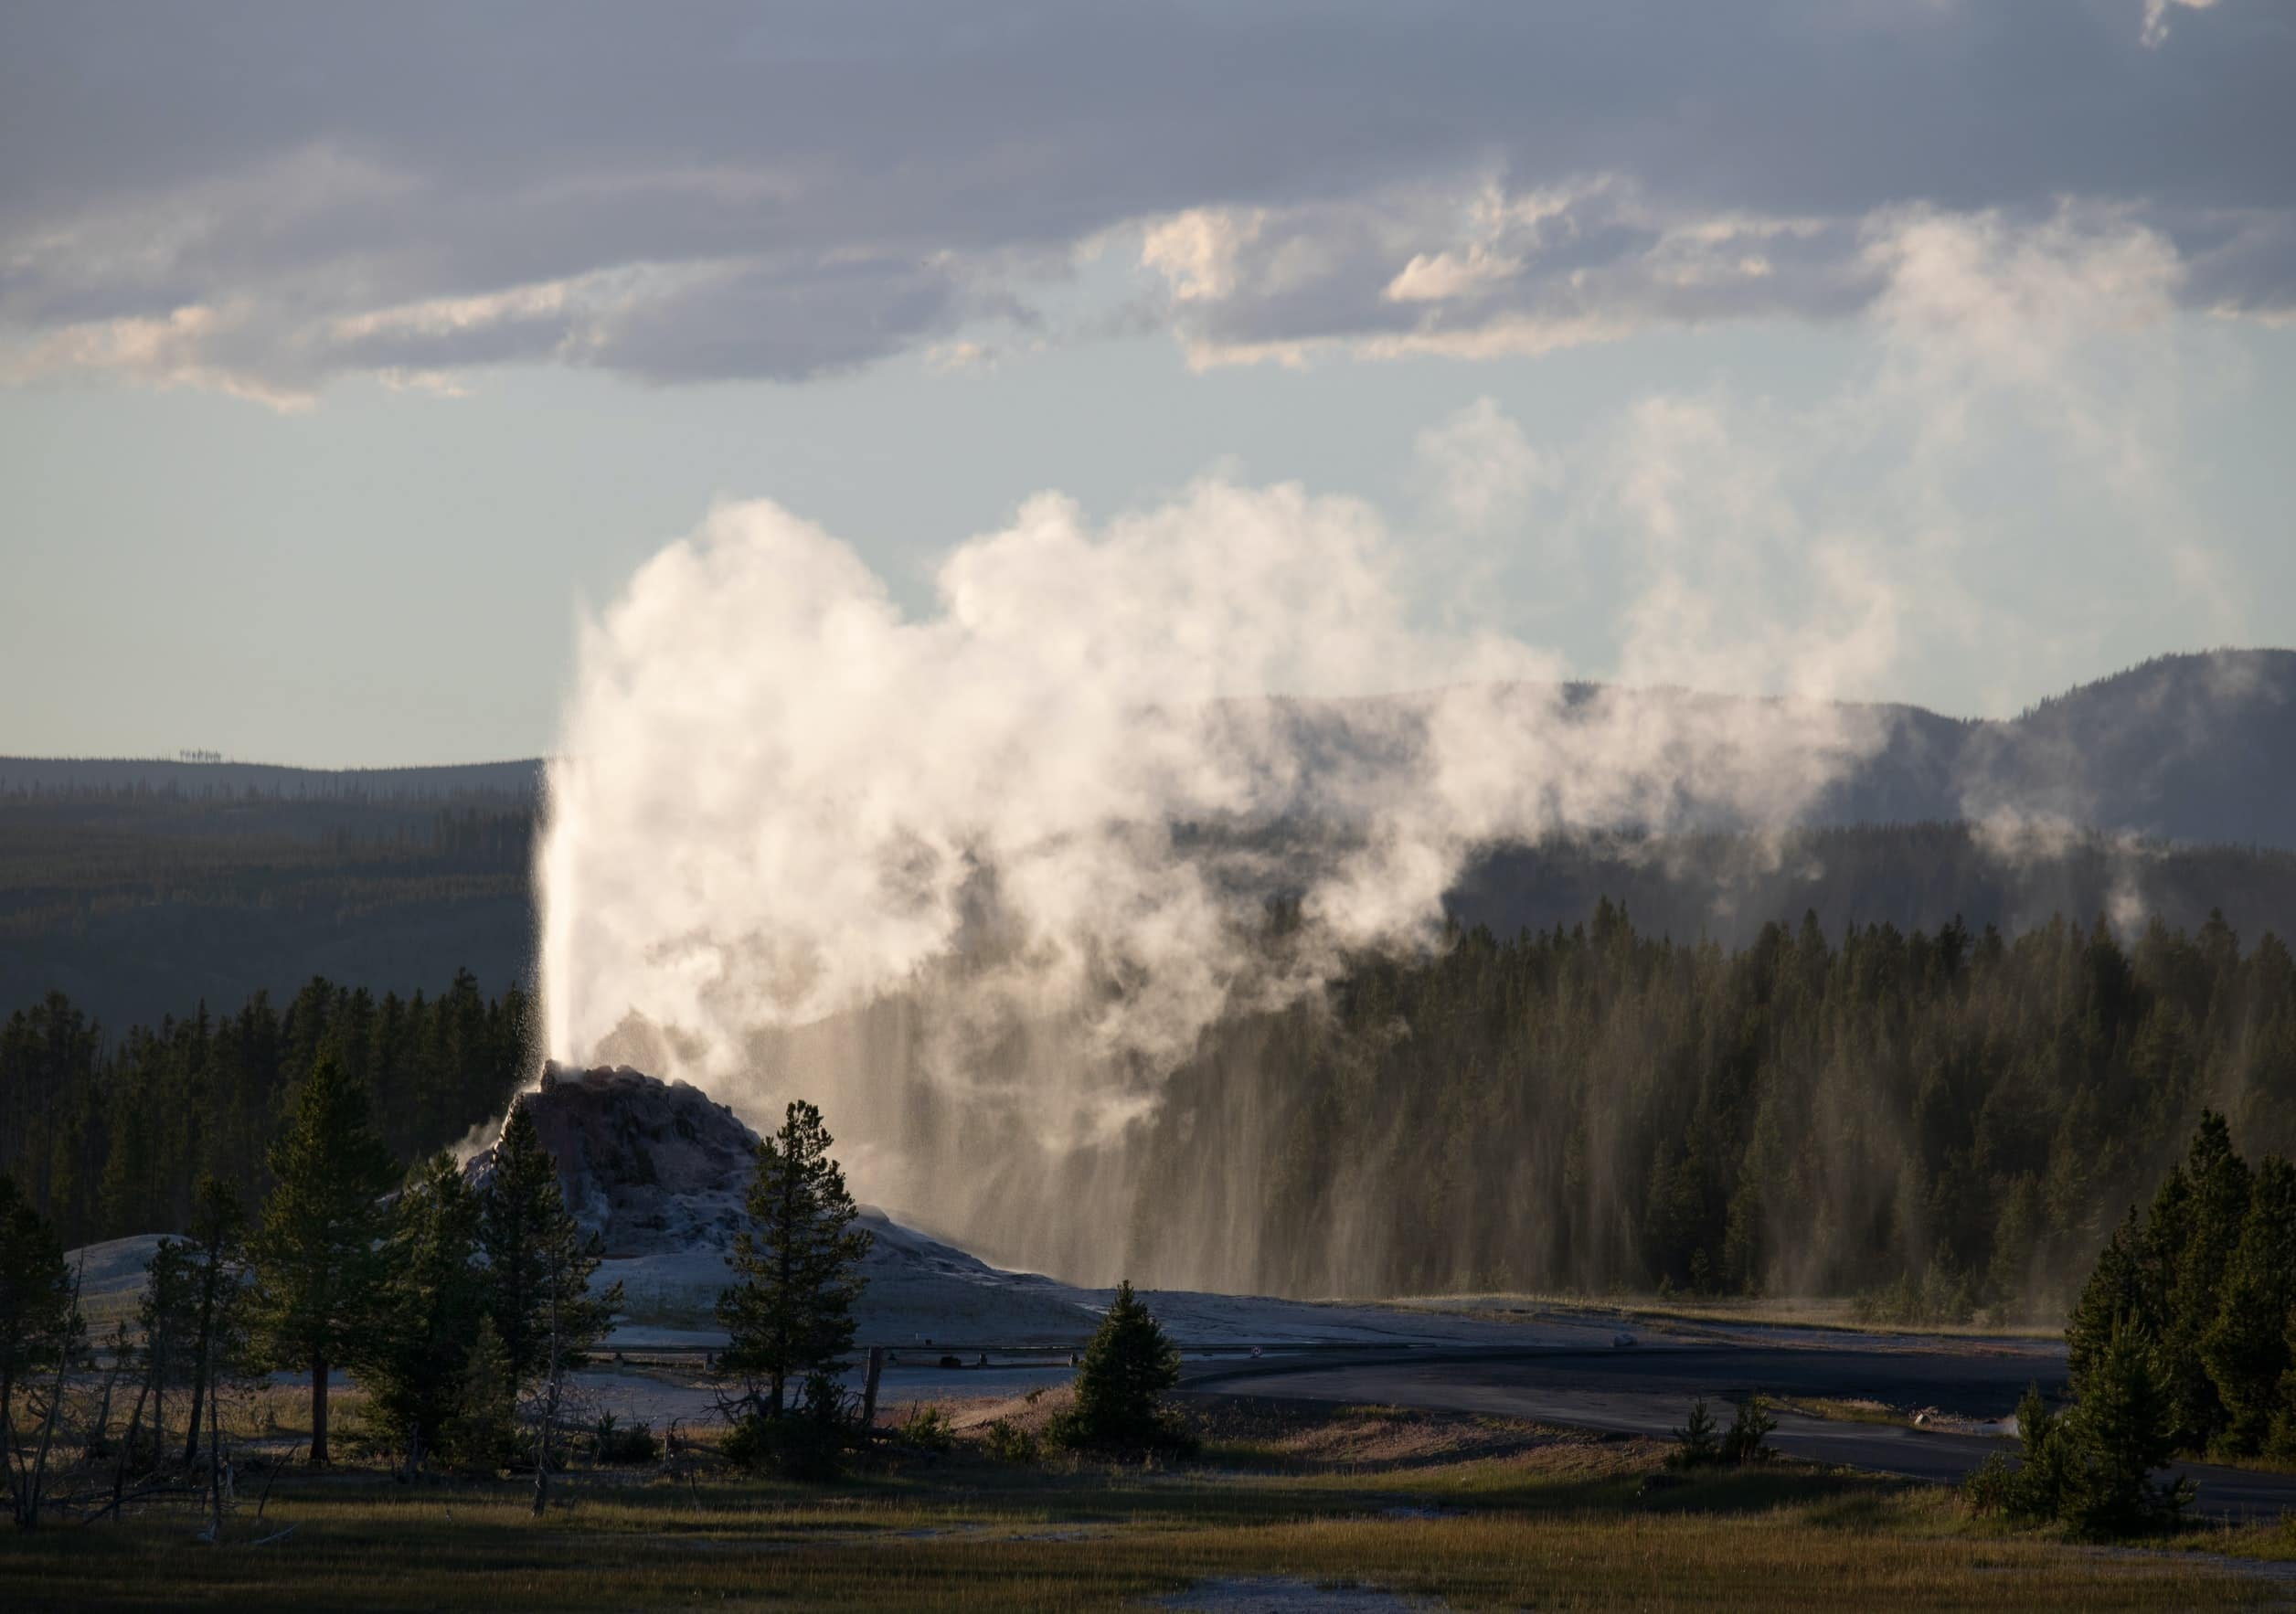 Beef production requires large amounts of resources, land & water. Fungi Based Meat or plant-based diet requires way less resources. Geyser shooting water into the air.